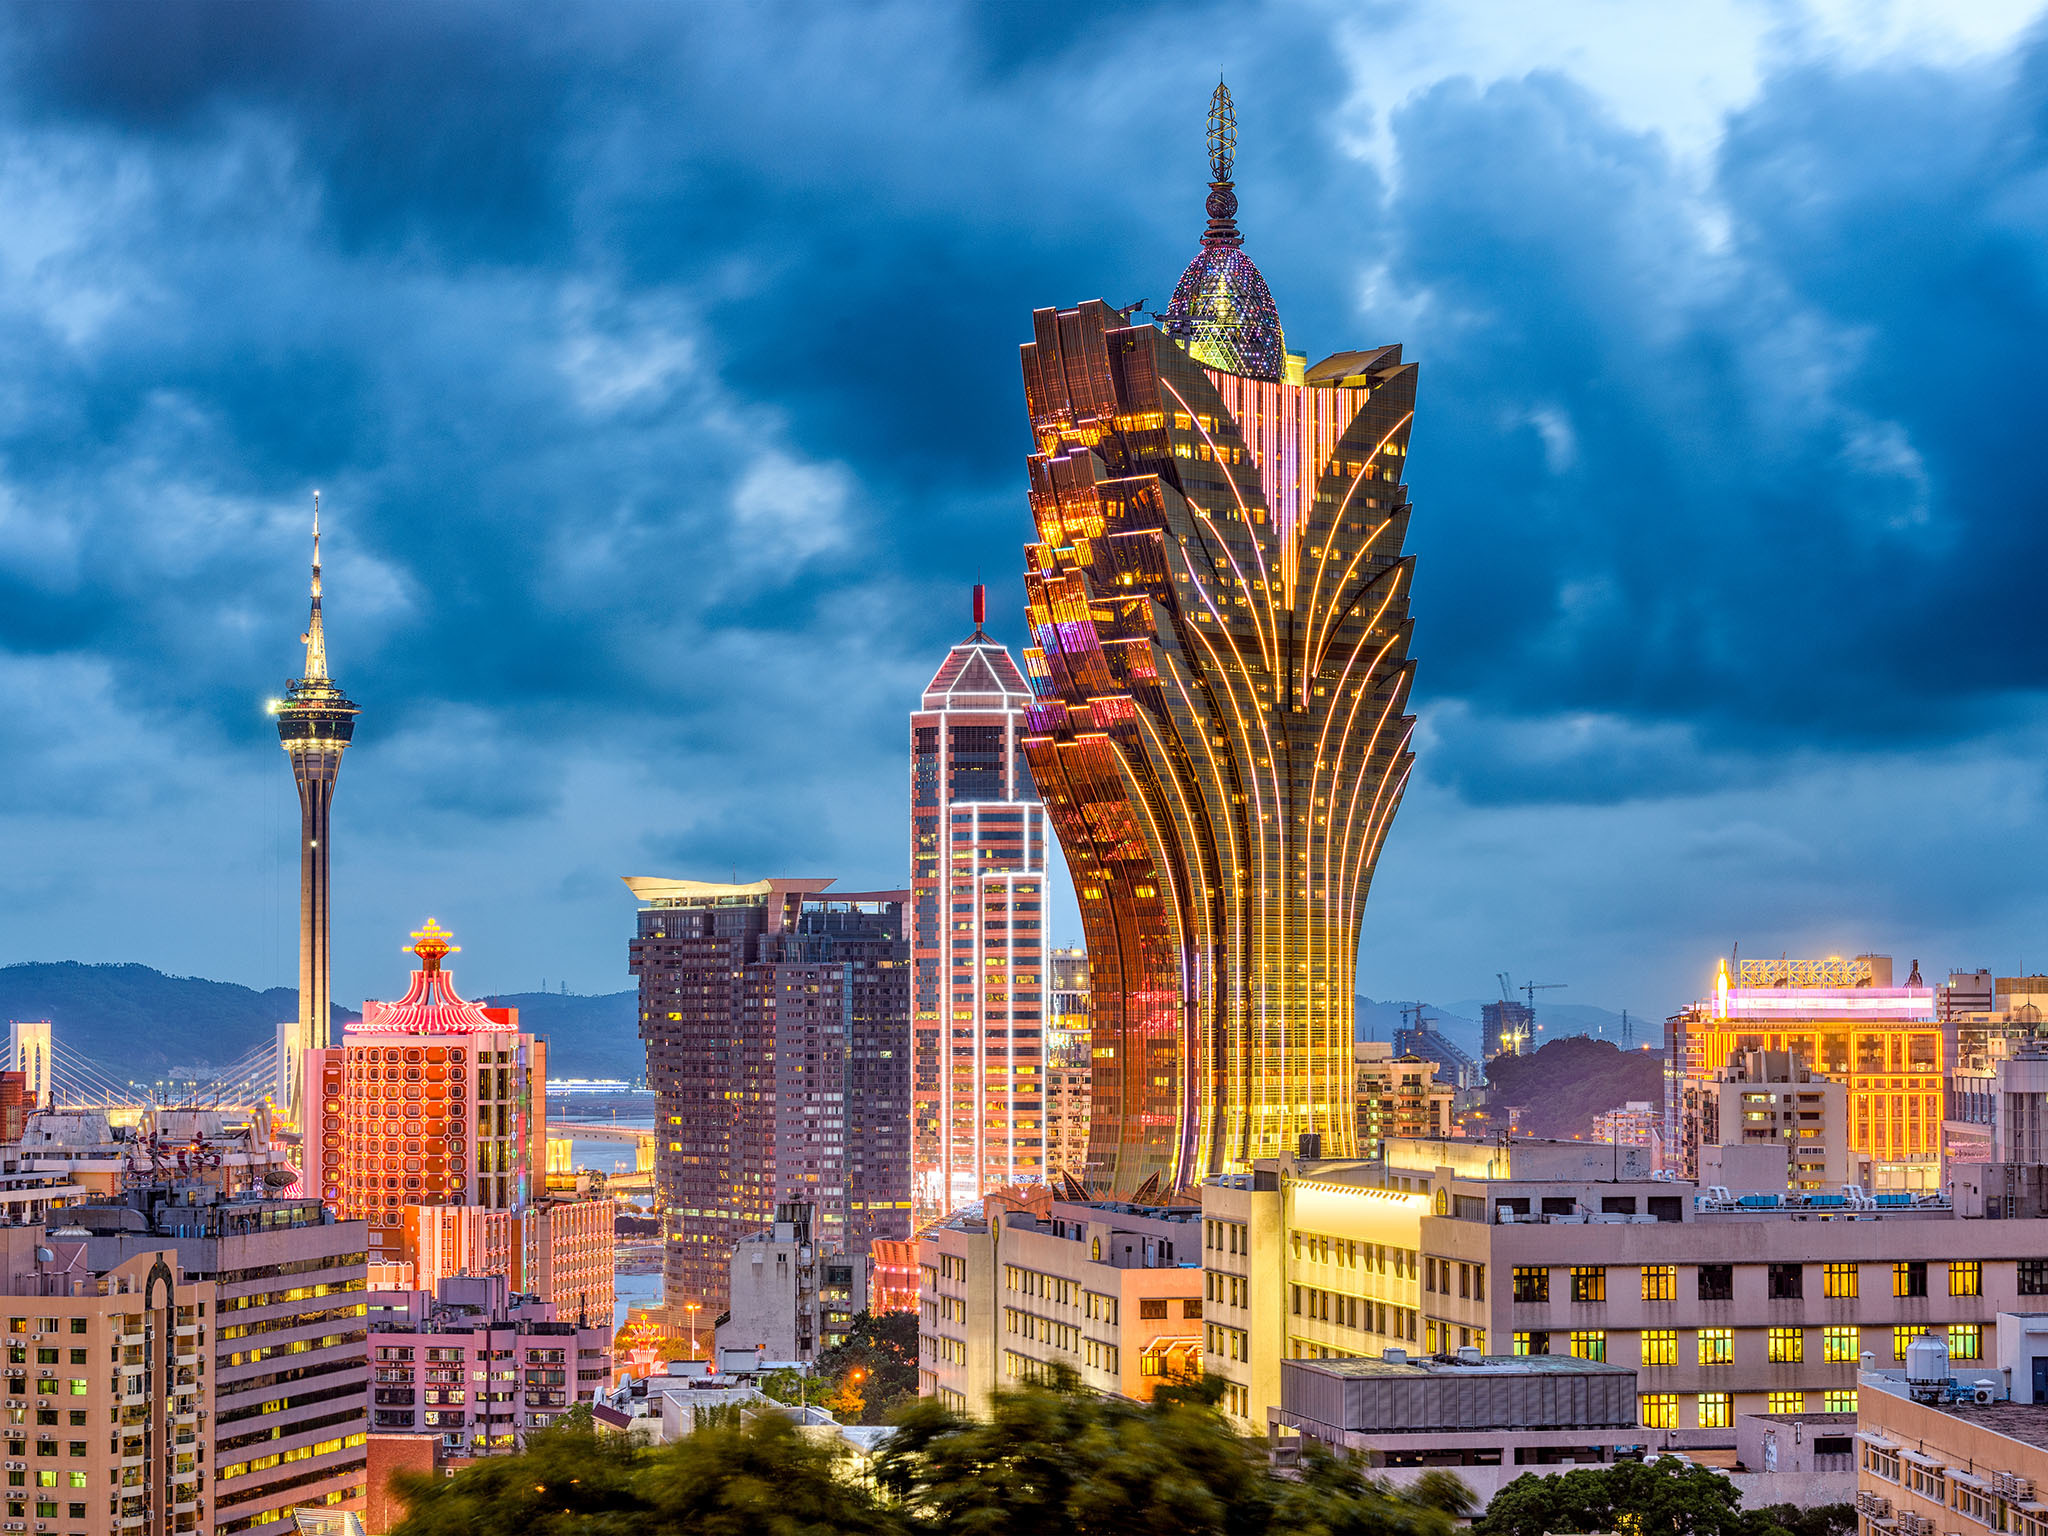 Macau 2020 | Ultimate Guide To Where To Go, Eat & Sleep in Macau | Time Out